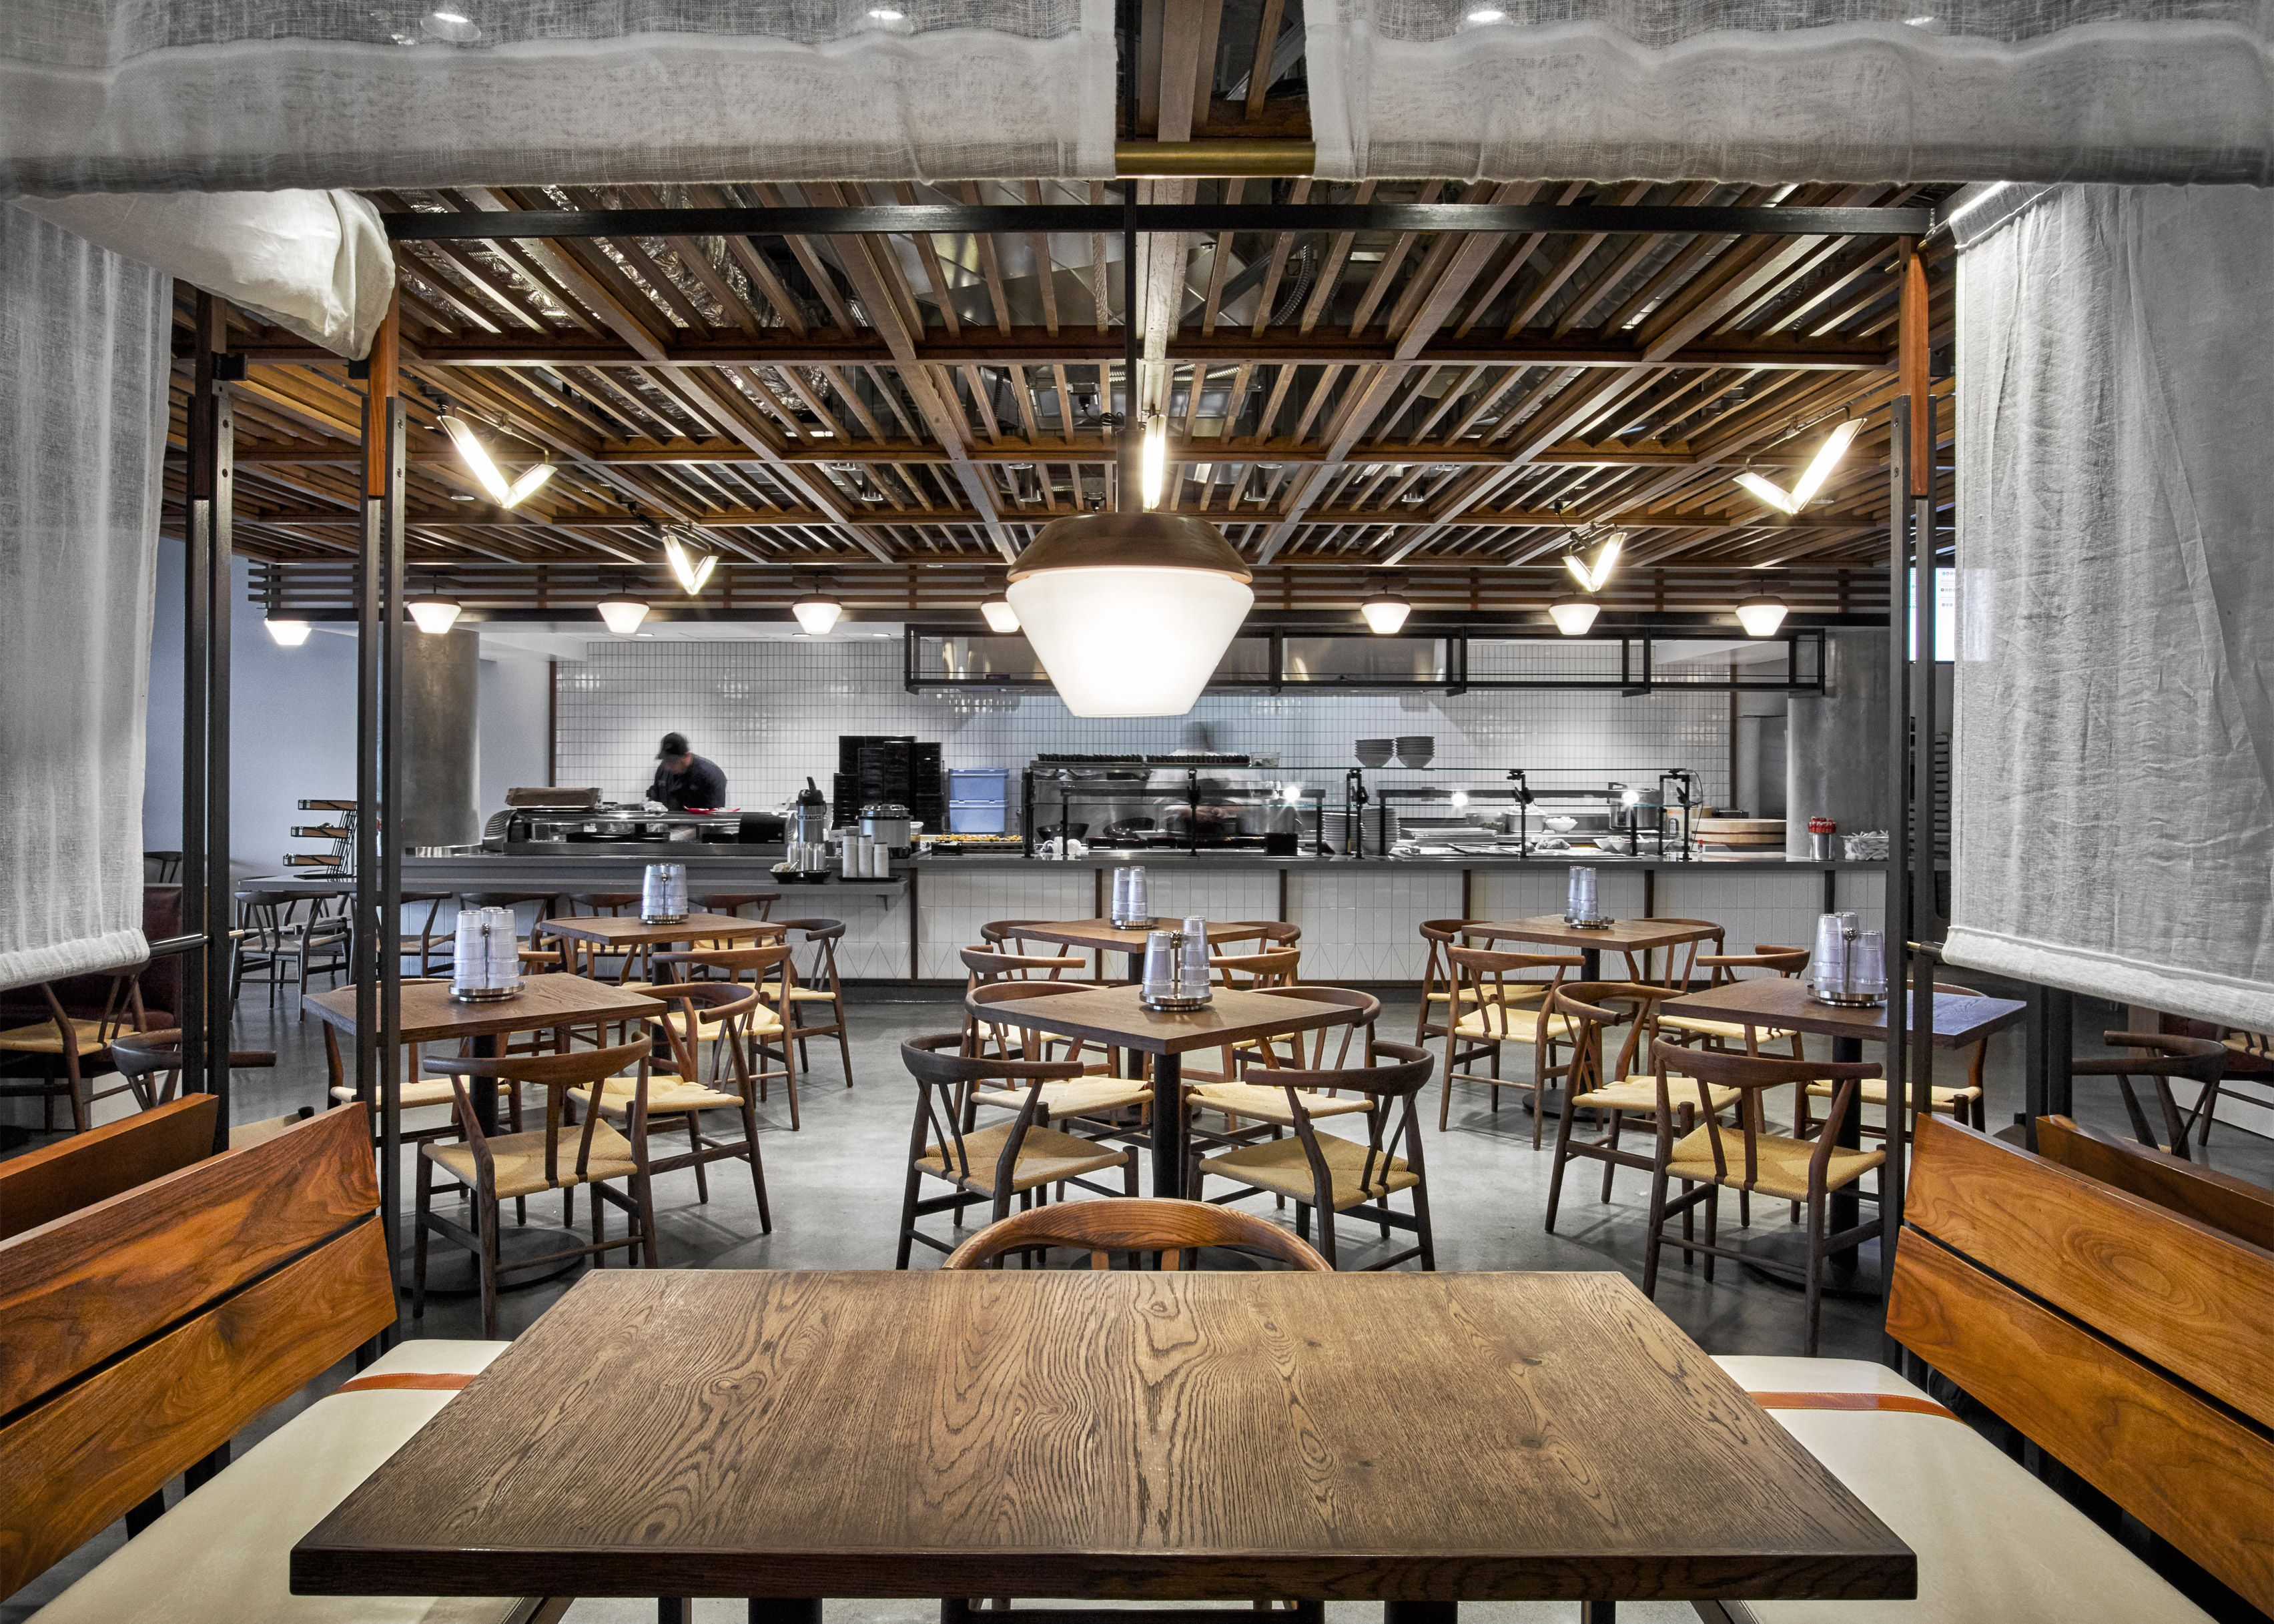 Dropbox opens industrialstyle cafeteria at California